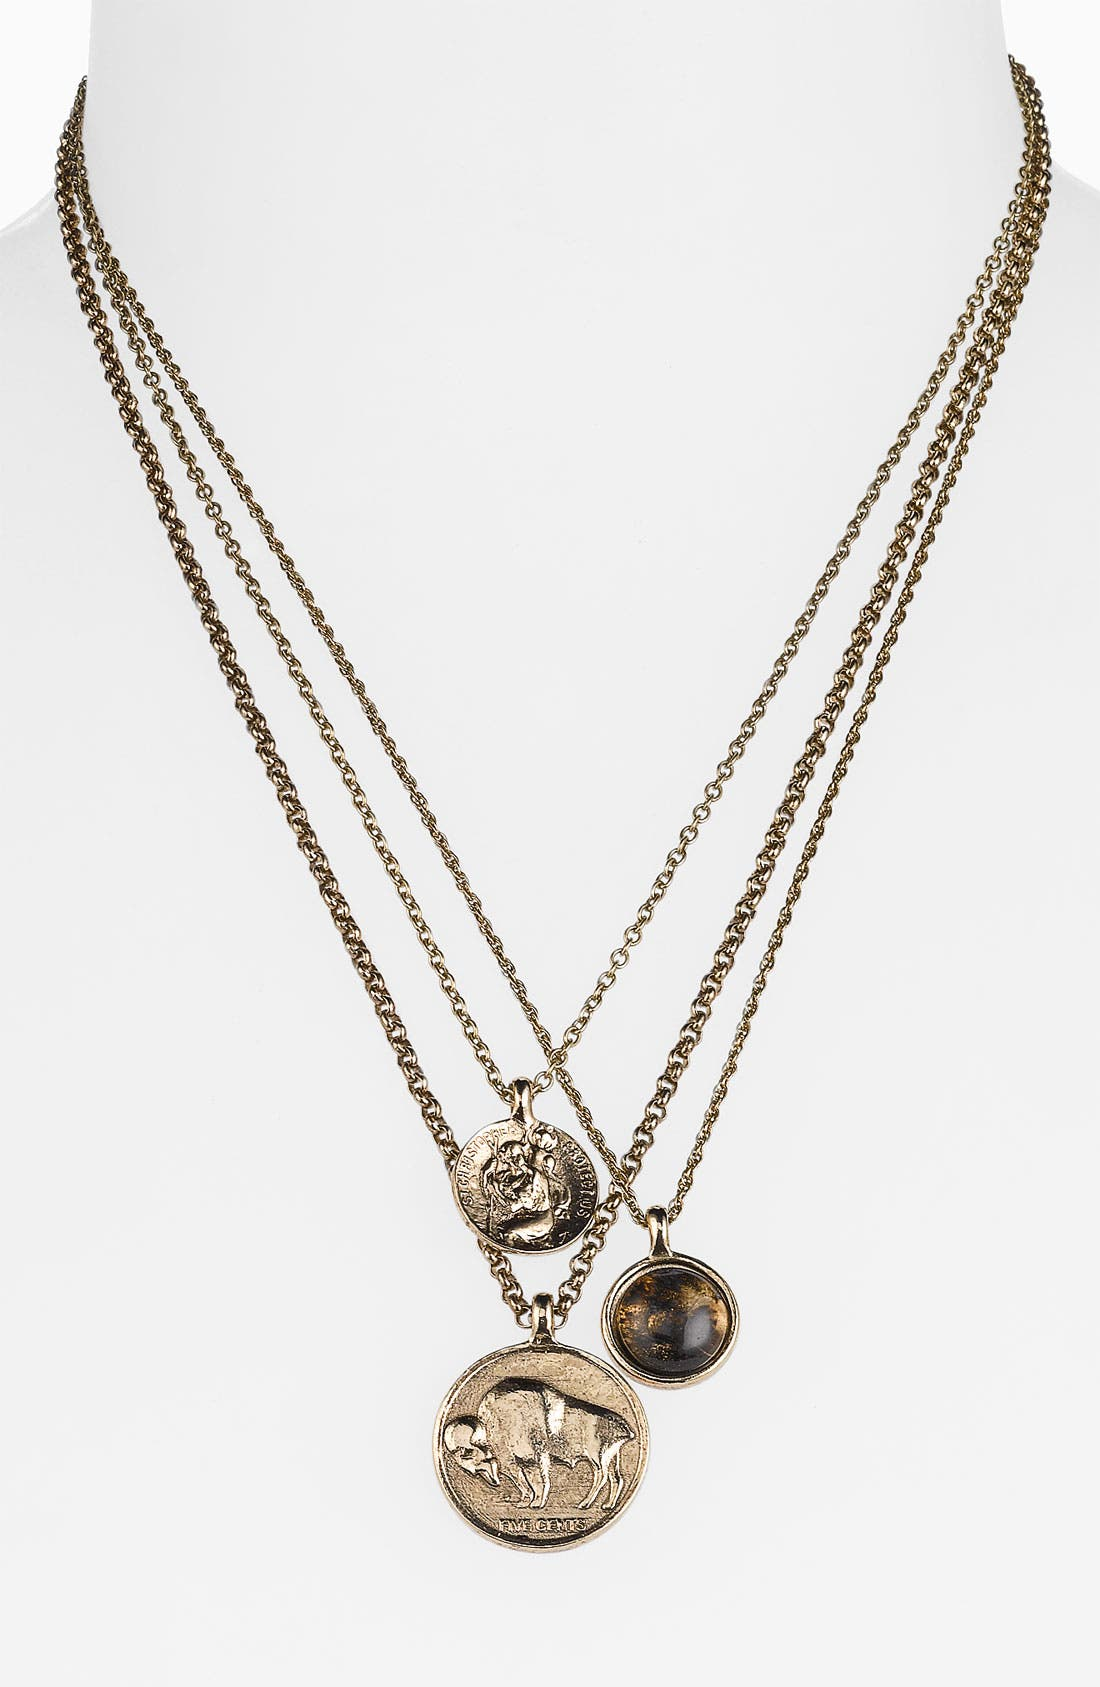 Main Image - Low Luv by Erin Wasson Triple Charm Necklace